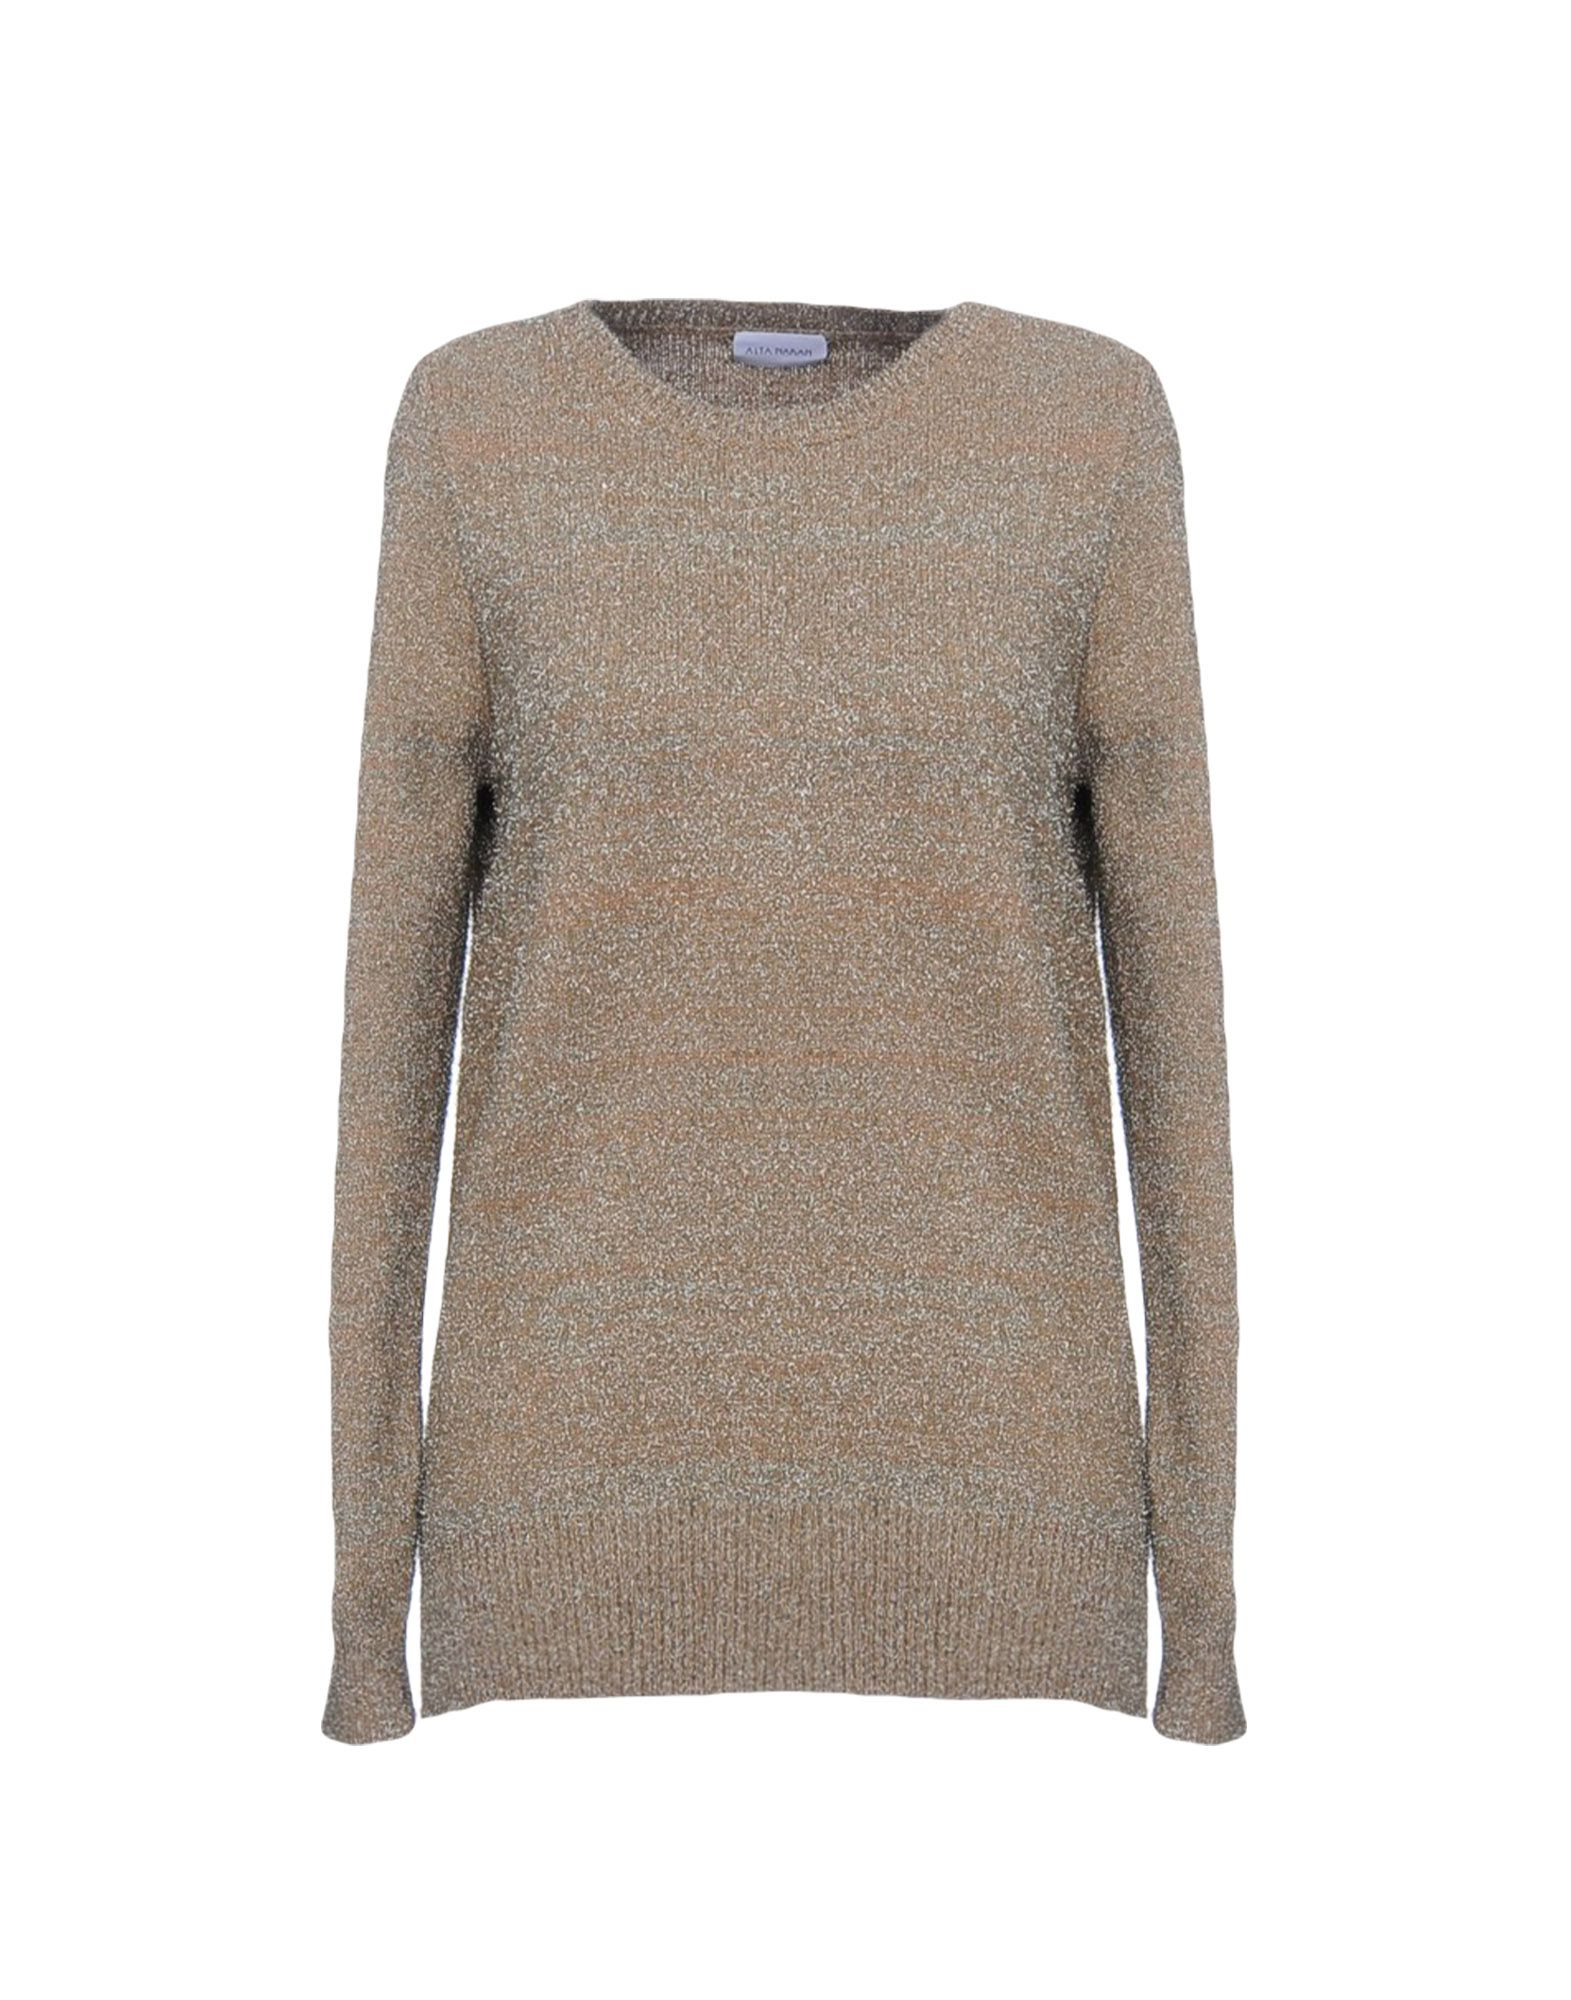 KNITWEAR - Jumpers Alta Naran Free Shipping Official Sale Footaction Buy Best 8OEGrFhkIh